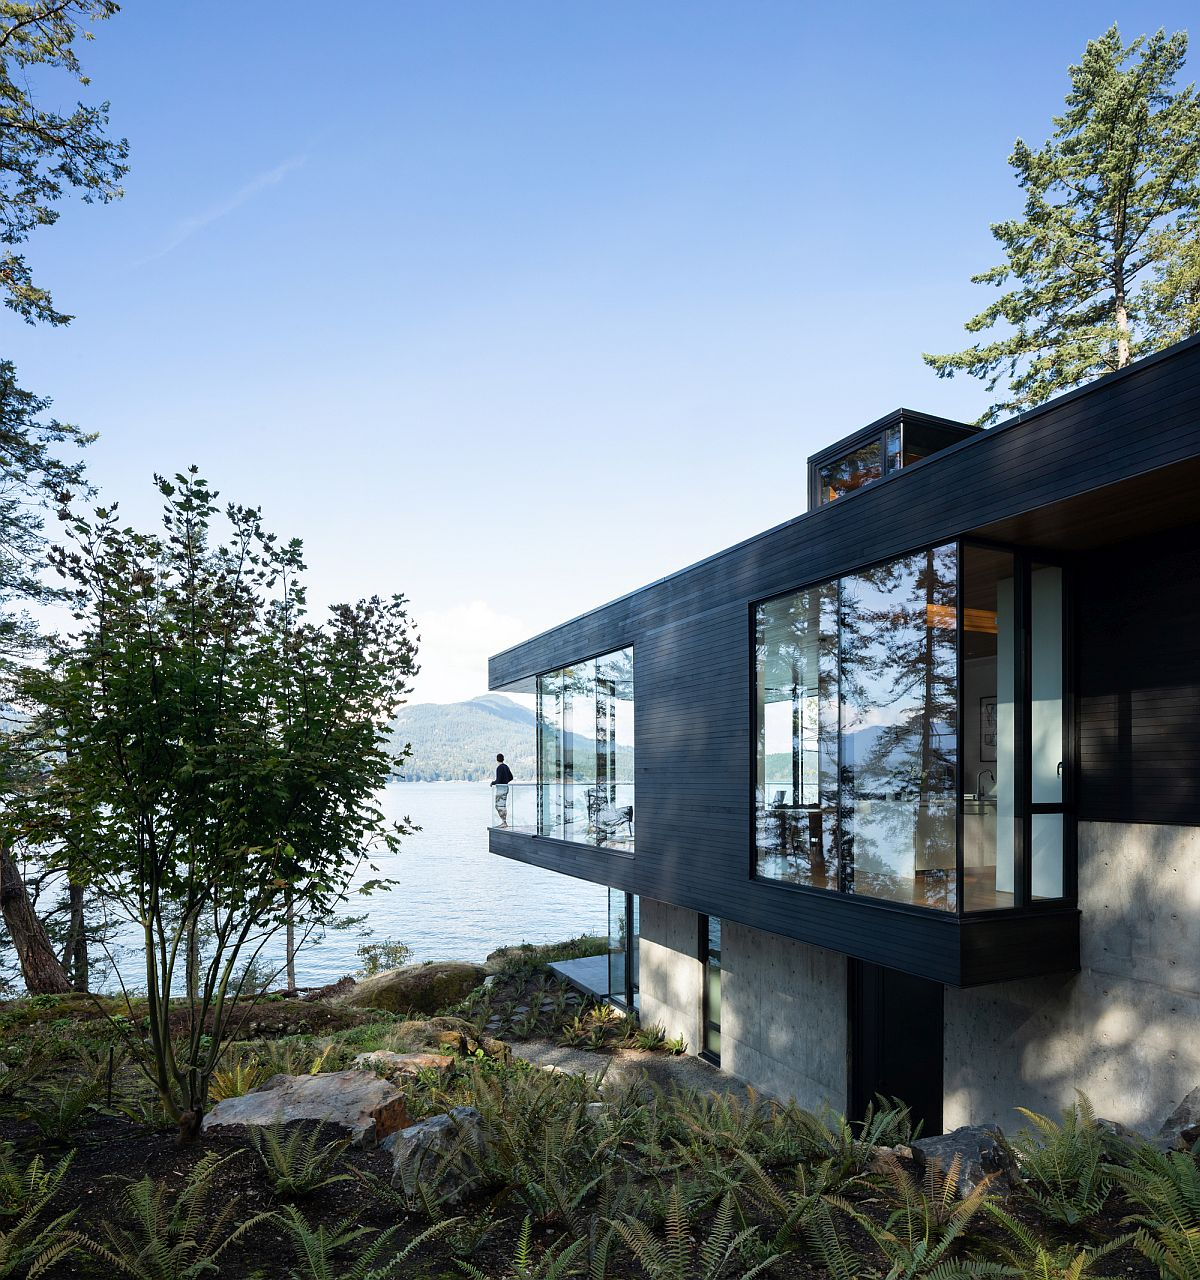 Ingenious island home leaves as little carbon footprint as possible